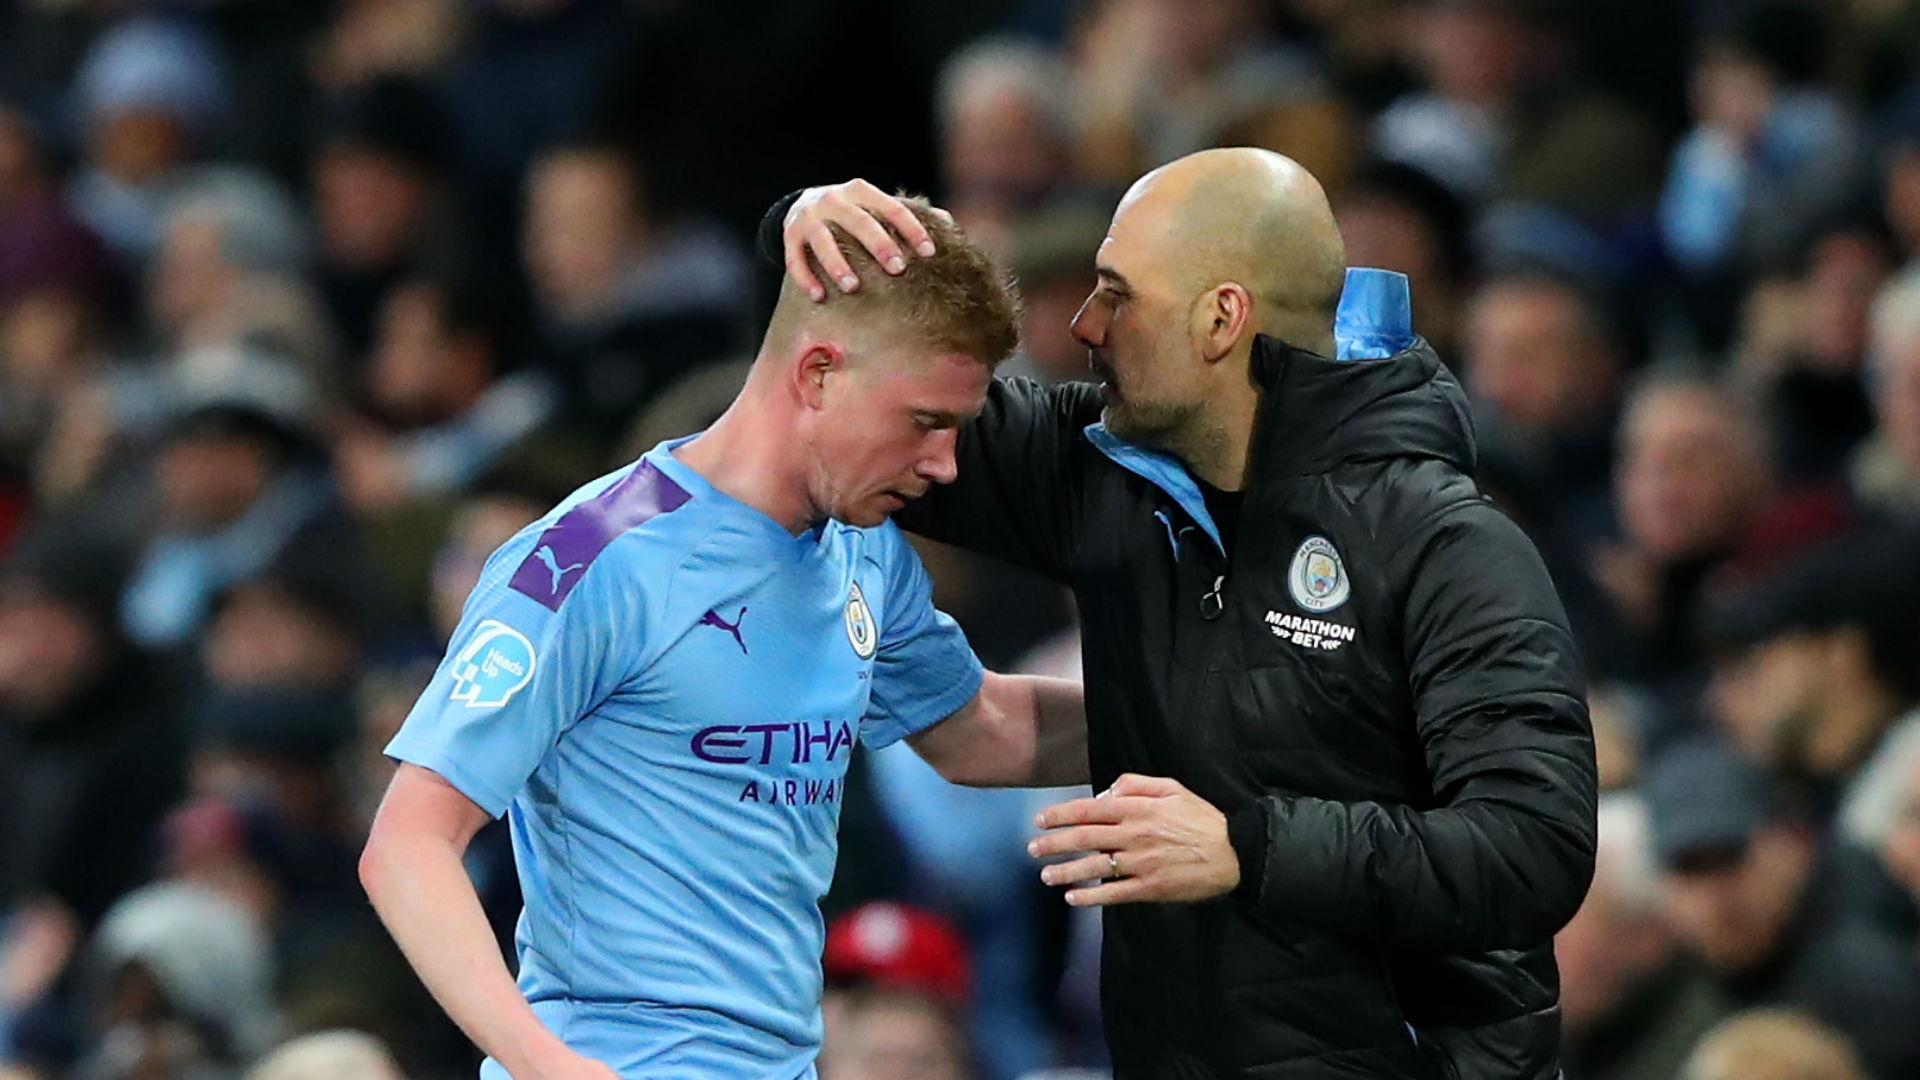 I would have stayed in League Two - Guardiola discusses Man City future